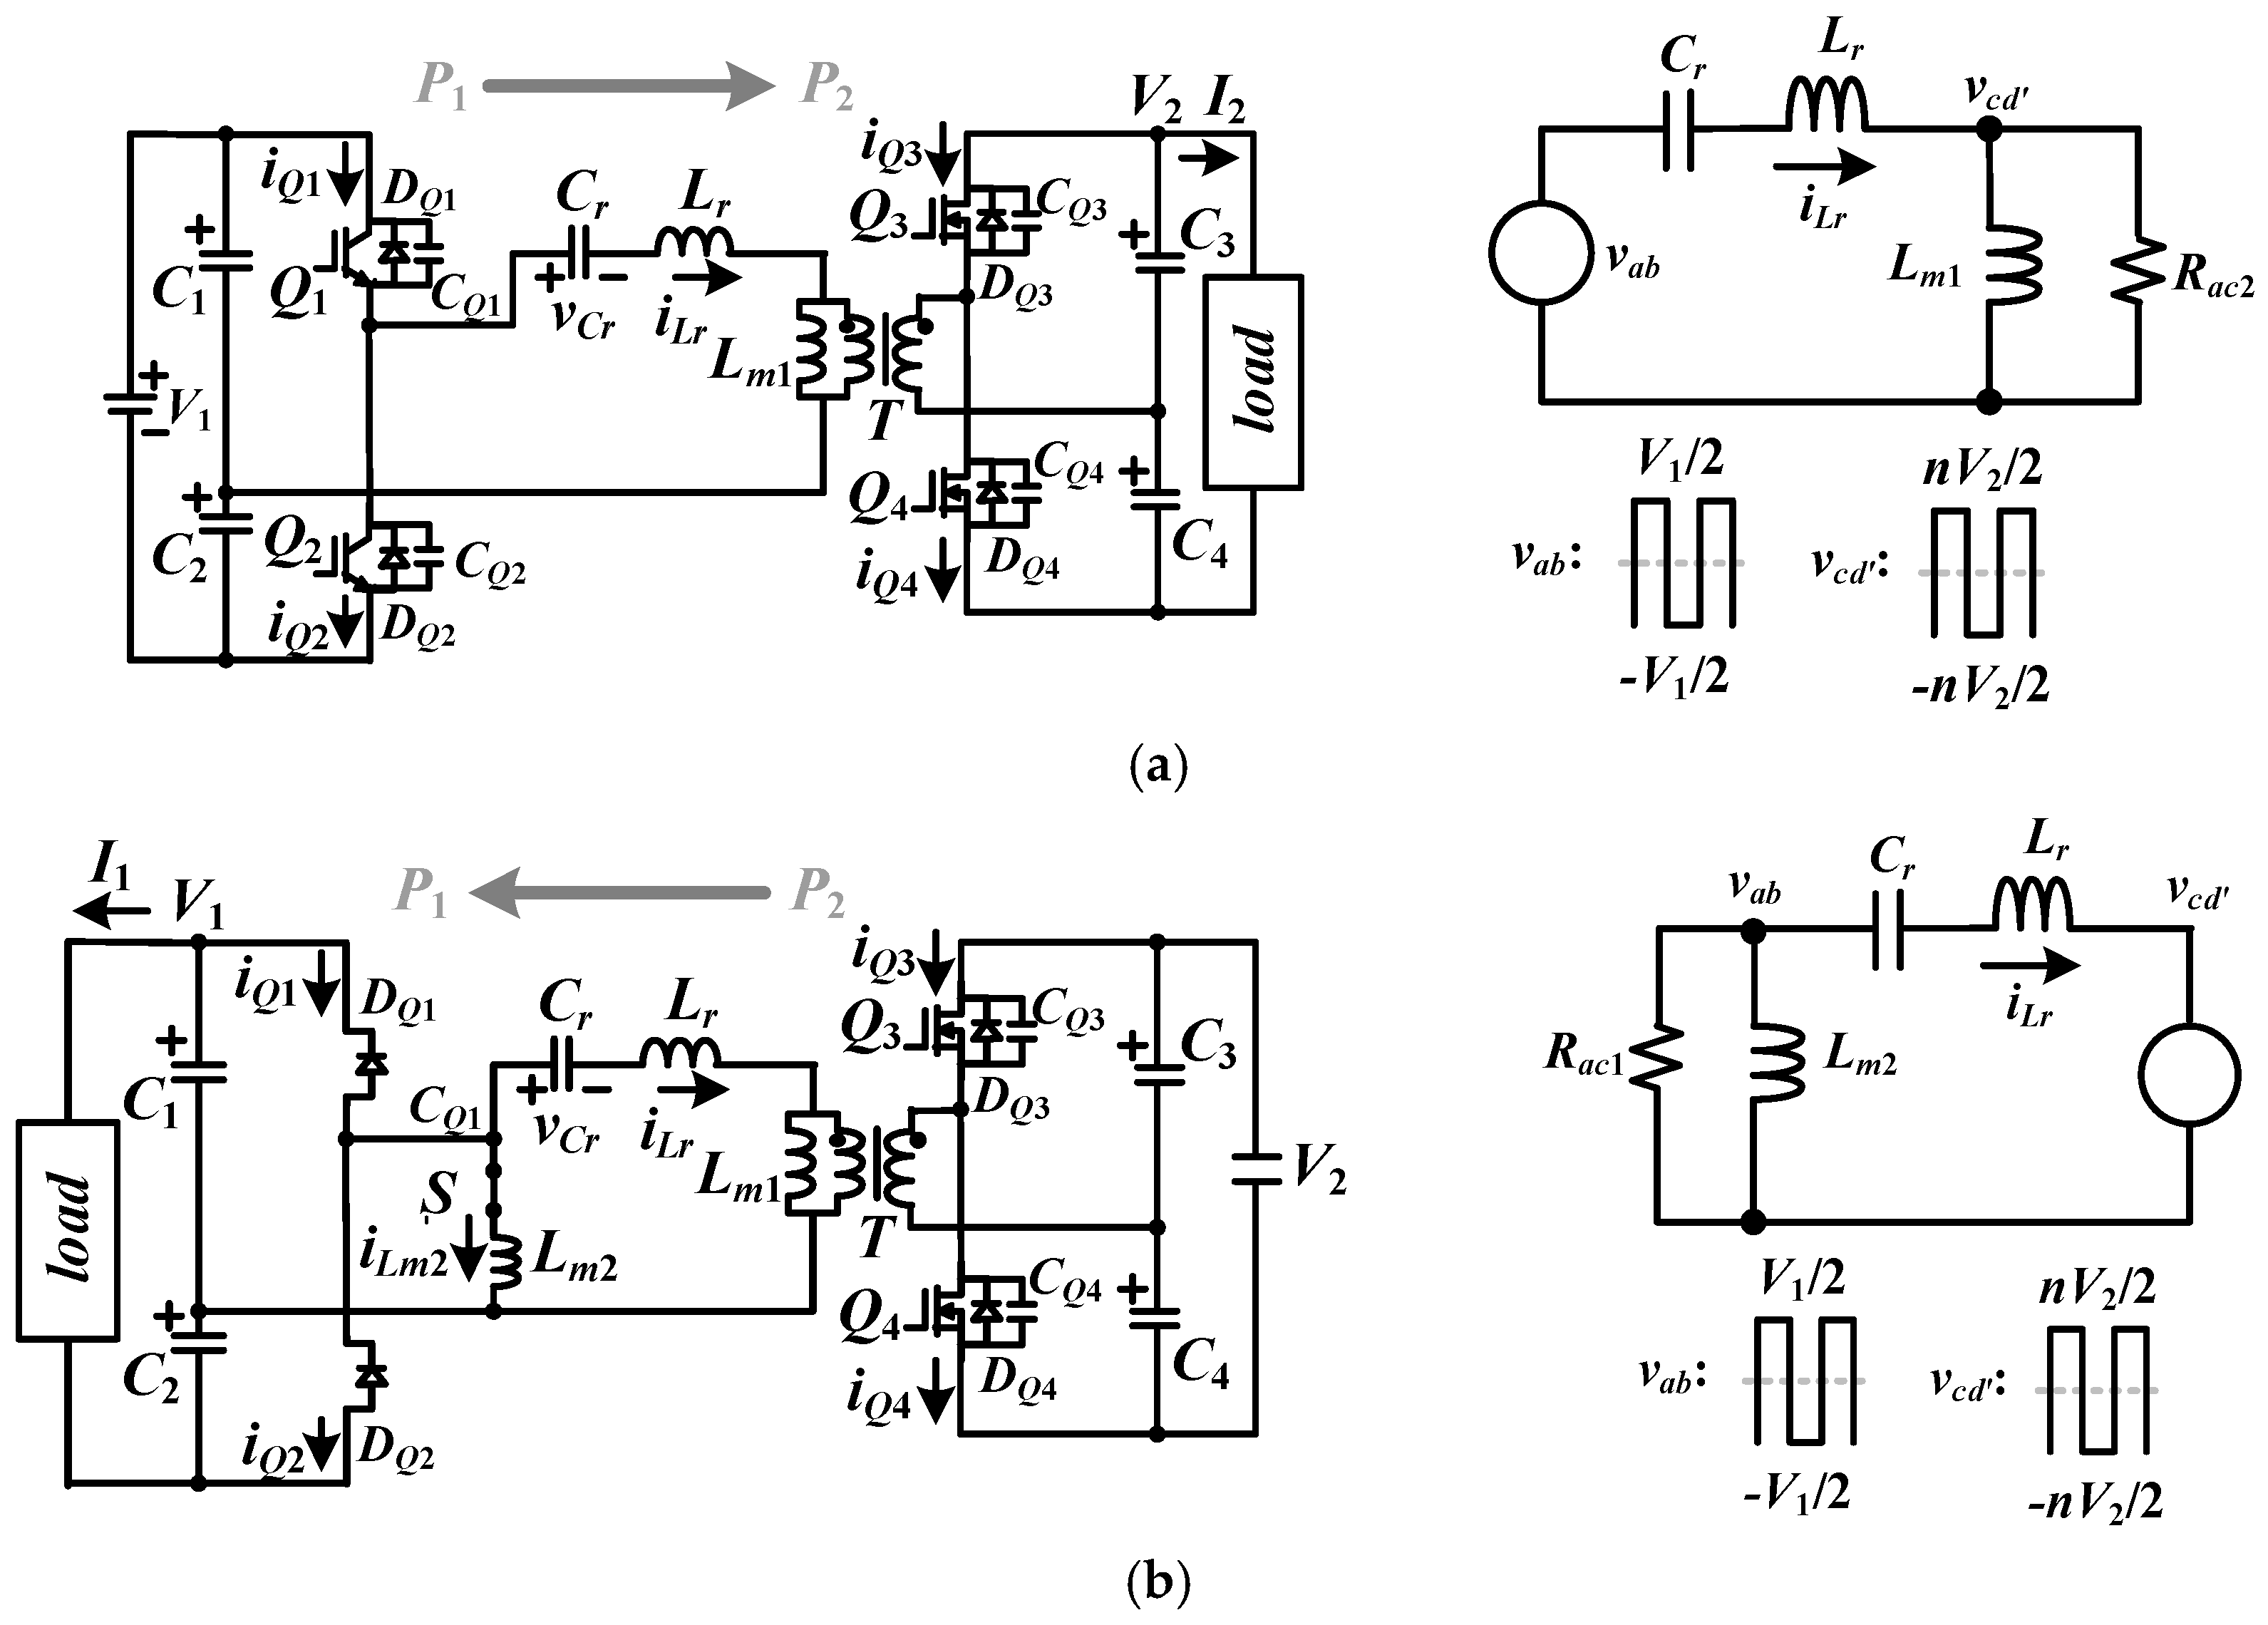 Energies Free Full Text Bidirectional Resonant Converter With Is The Dc Motor Circuit Which Allows Forward And Reverse 11 01259 G002